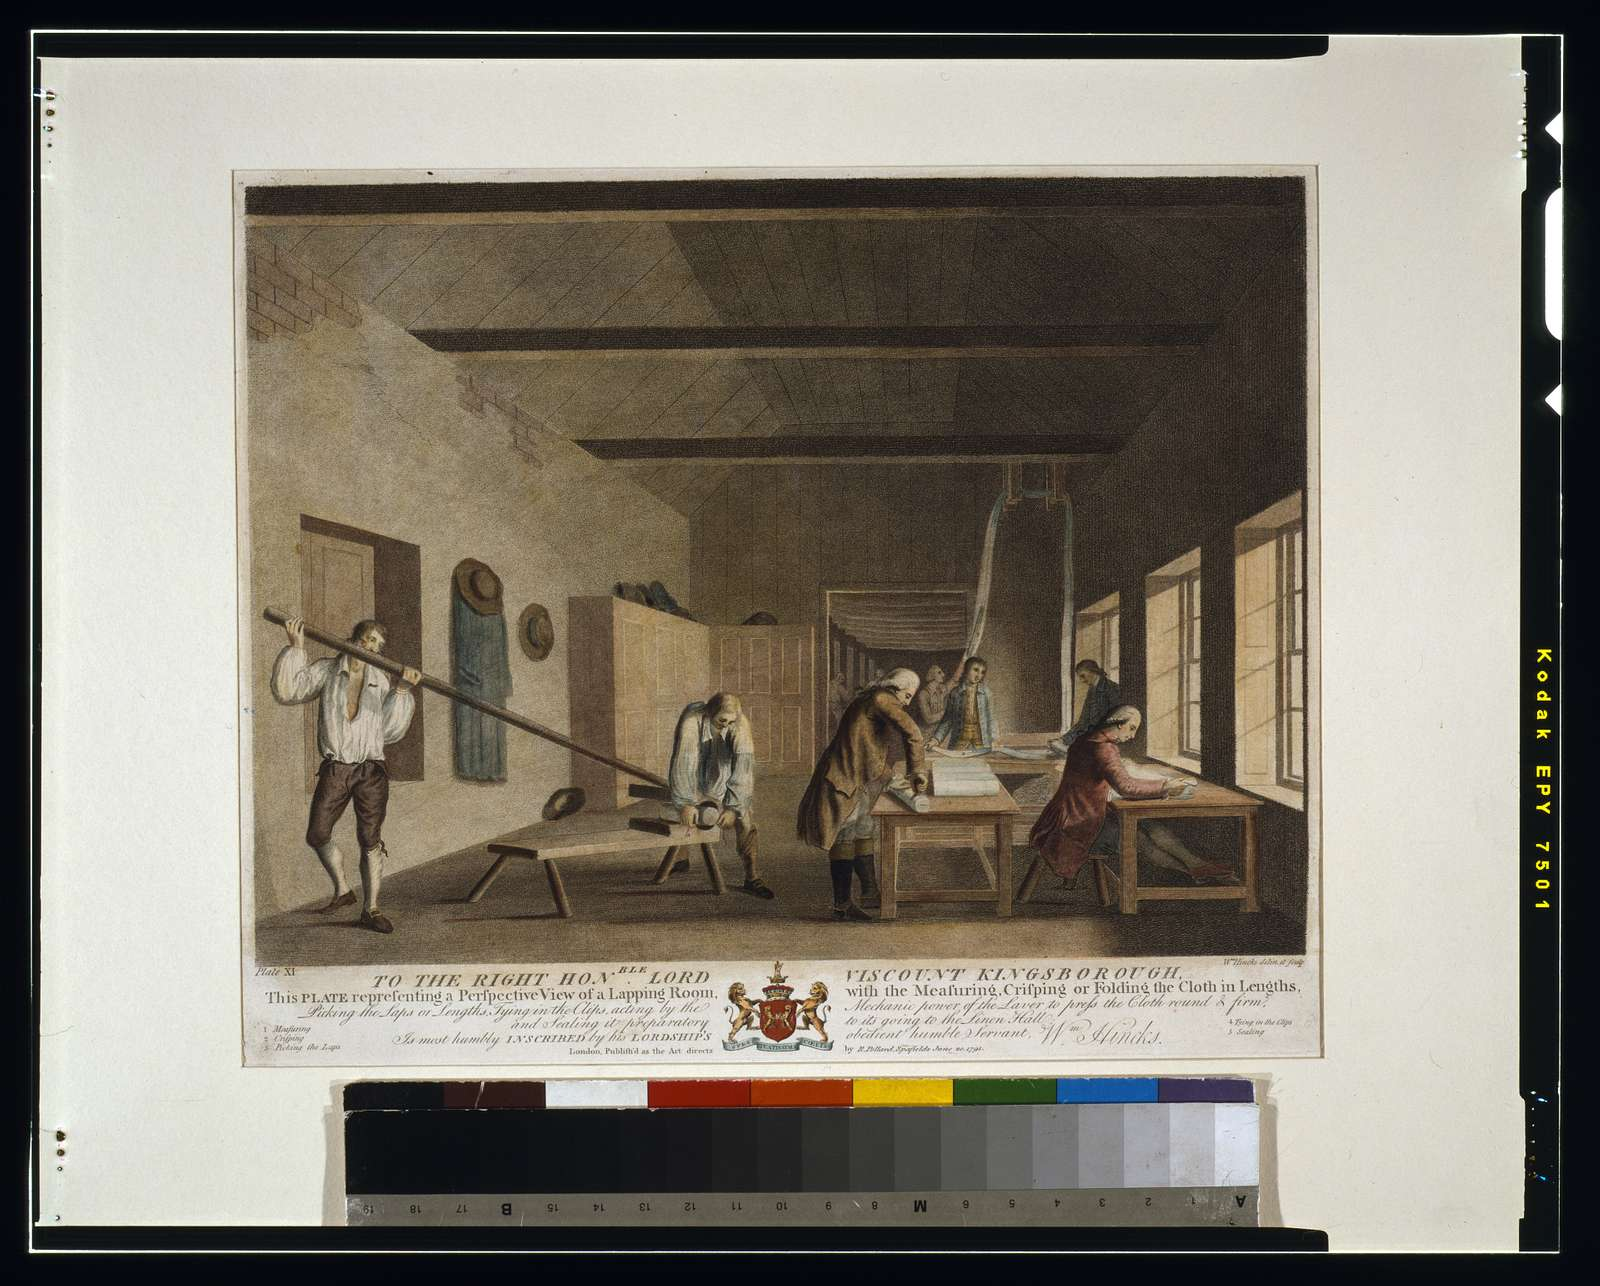 To the right hon'able Lord Viscount Kingsborough, ... this plate representing a perspective view of a lapping room, with the measuring, crisping or folding the cloth in lengths, picking the laps or lengths, tying in the clips, acting by the mechanic power of the laver to press the cloth round & firm, and sealing it preparatory to its going to the Linen Hall; is ... inscribed by ... Wm. Hincks / Wm. Hincks, delin. et sculp.